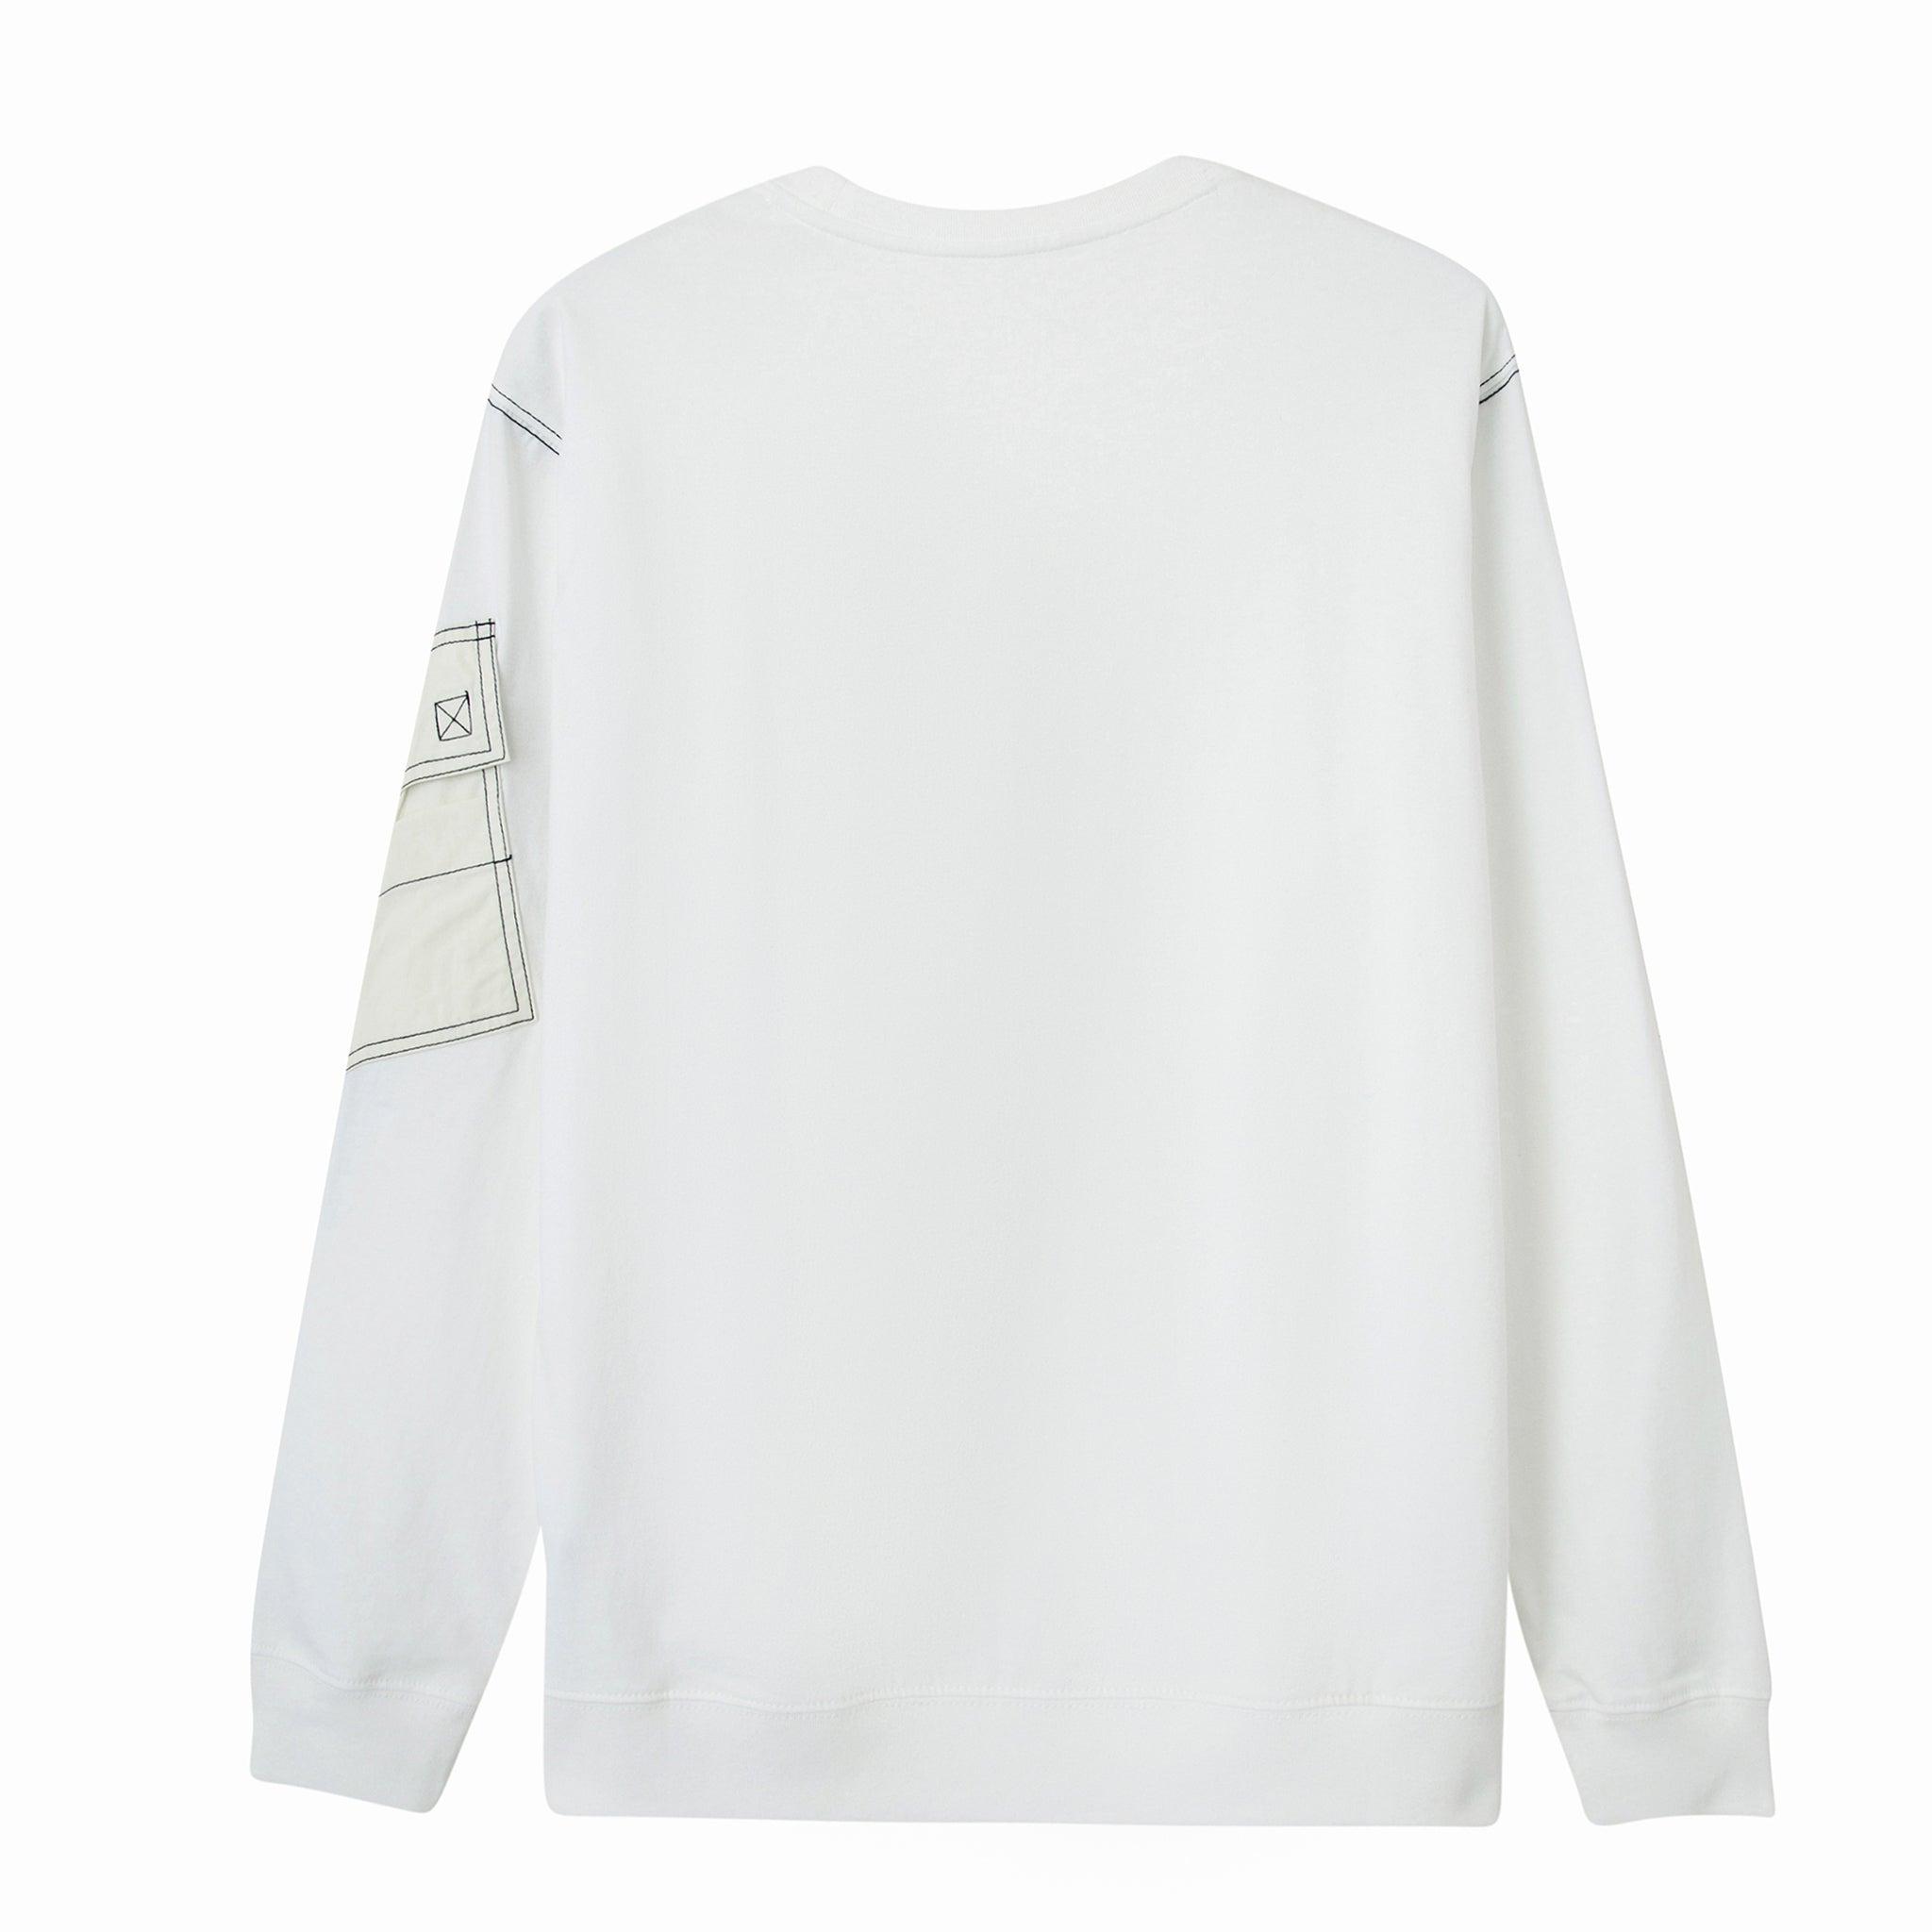 Load image into Gallery viewer, Le Fruit Defendu Pocket Sweatshirt - White